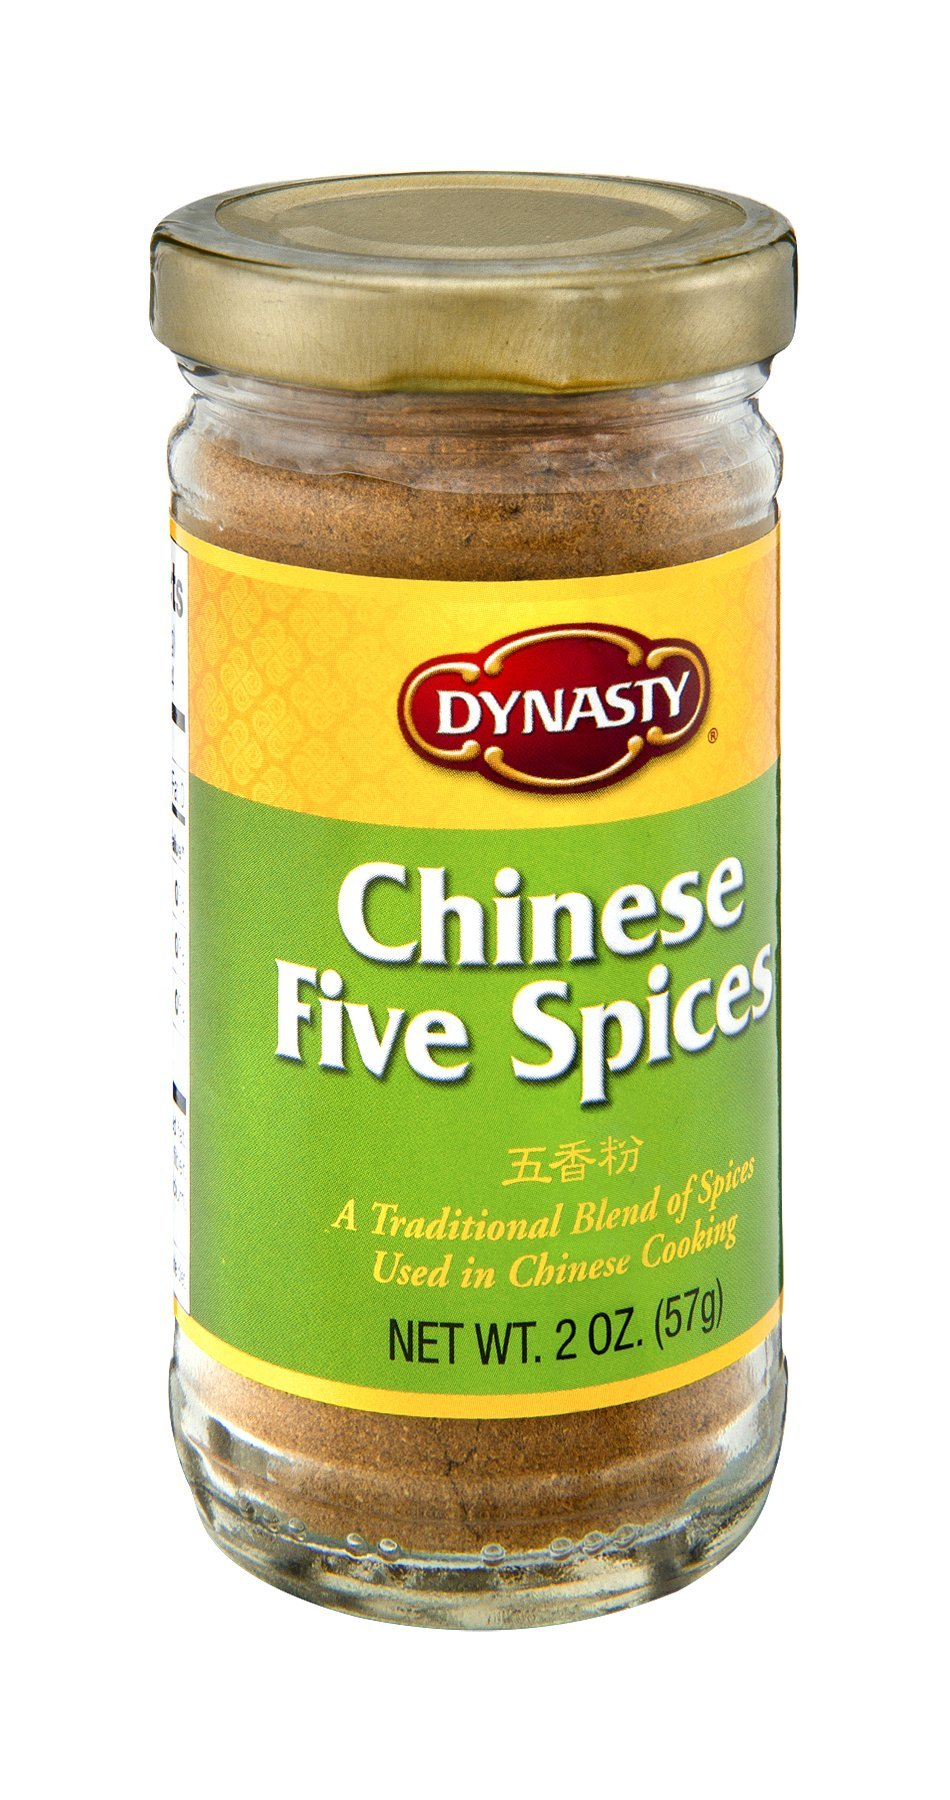 DYNASTY SSNNG PWDR FIVE SPICE, 2 OZ